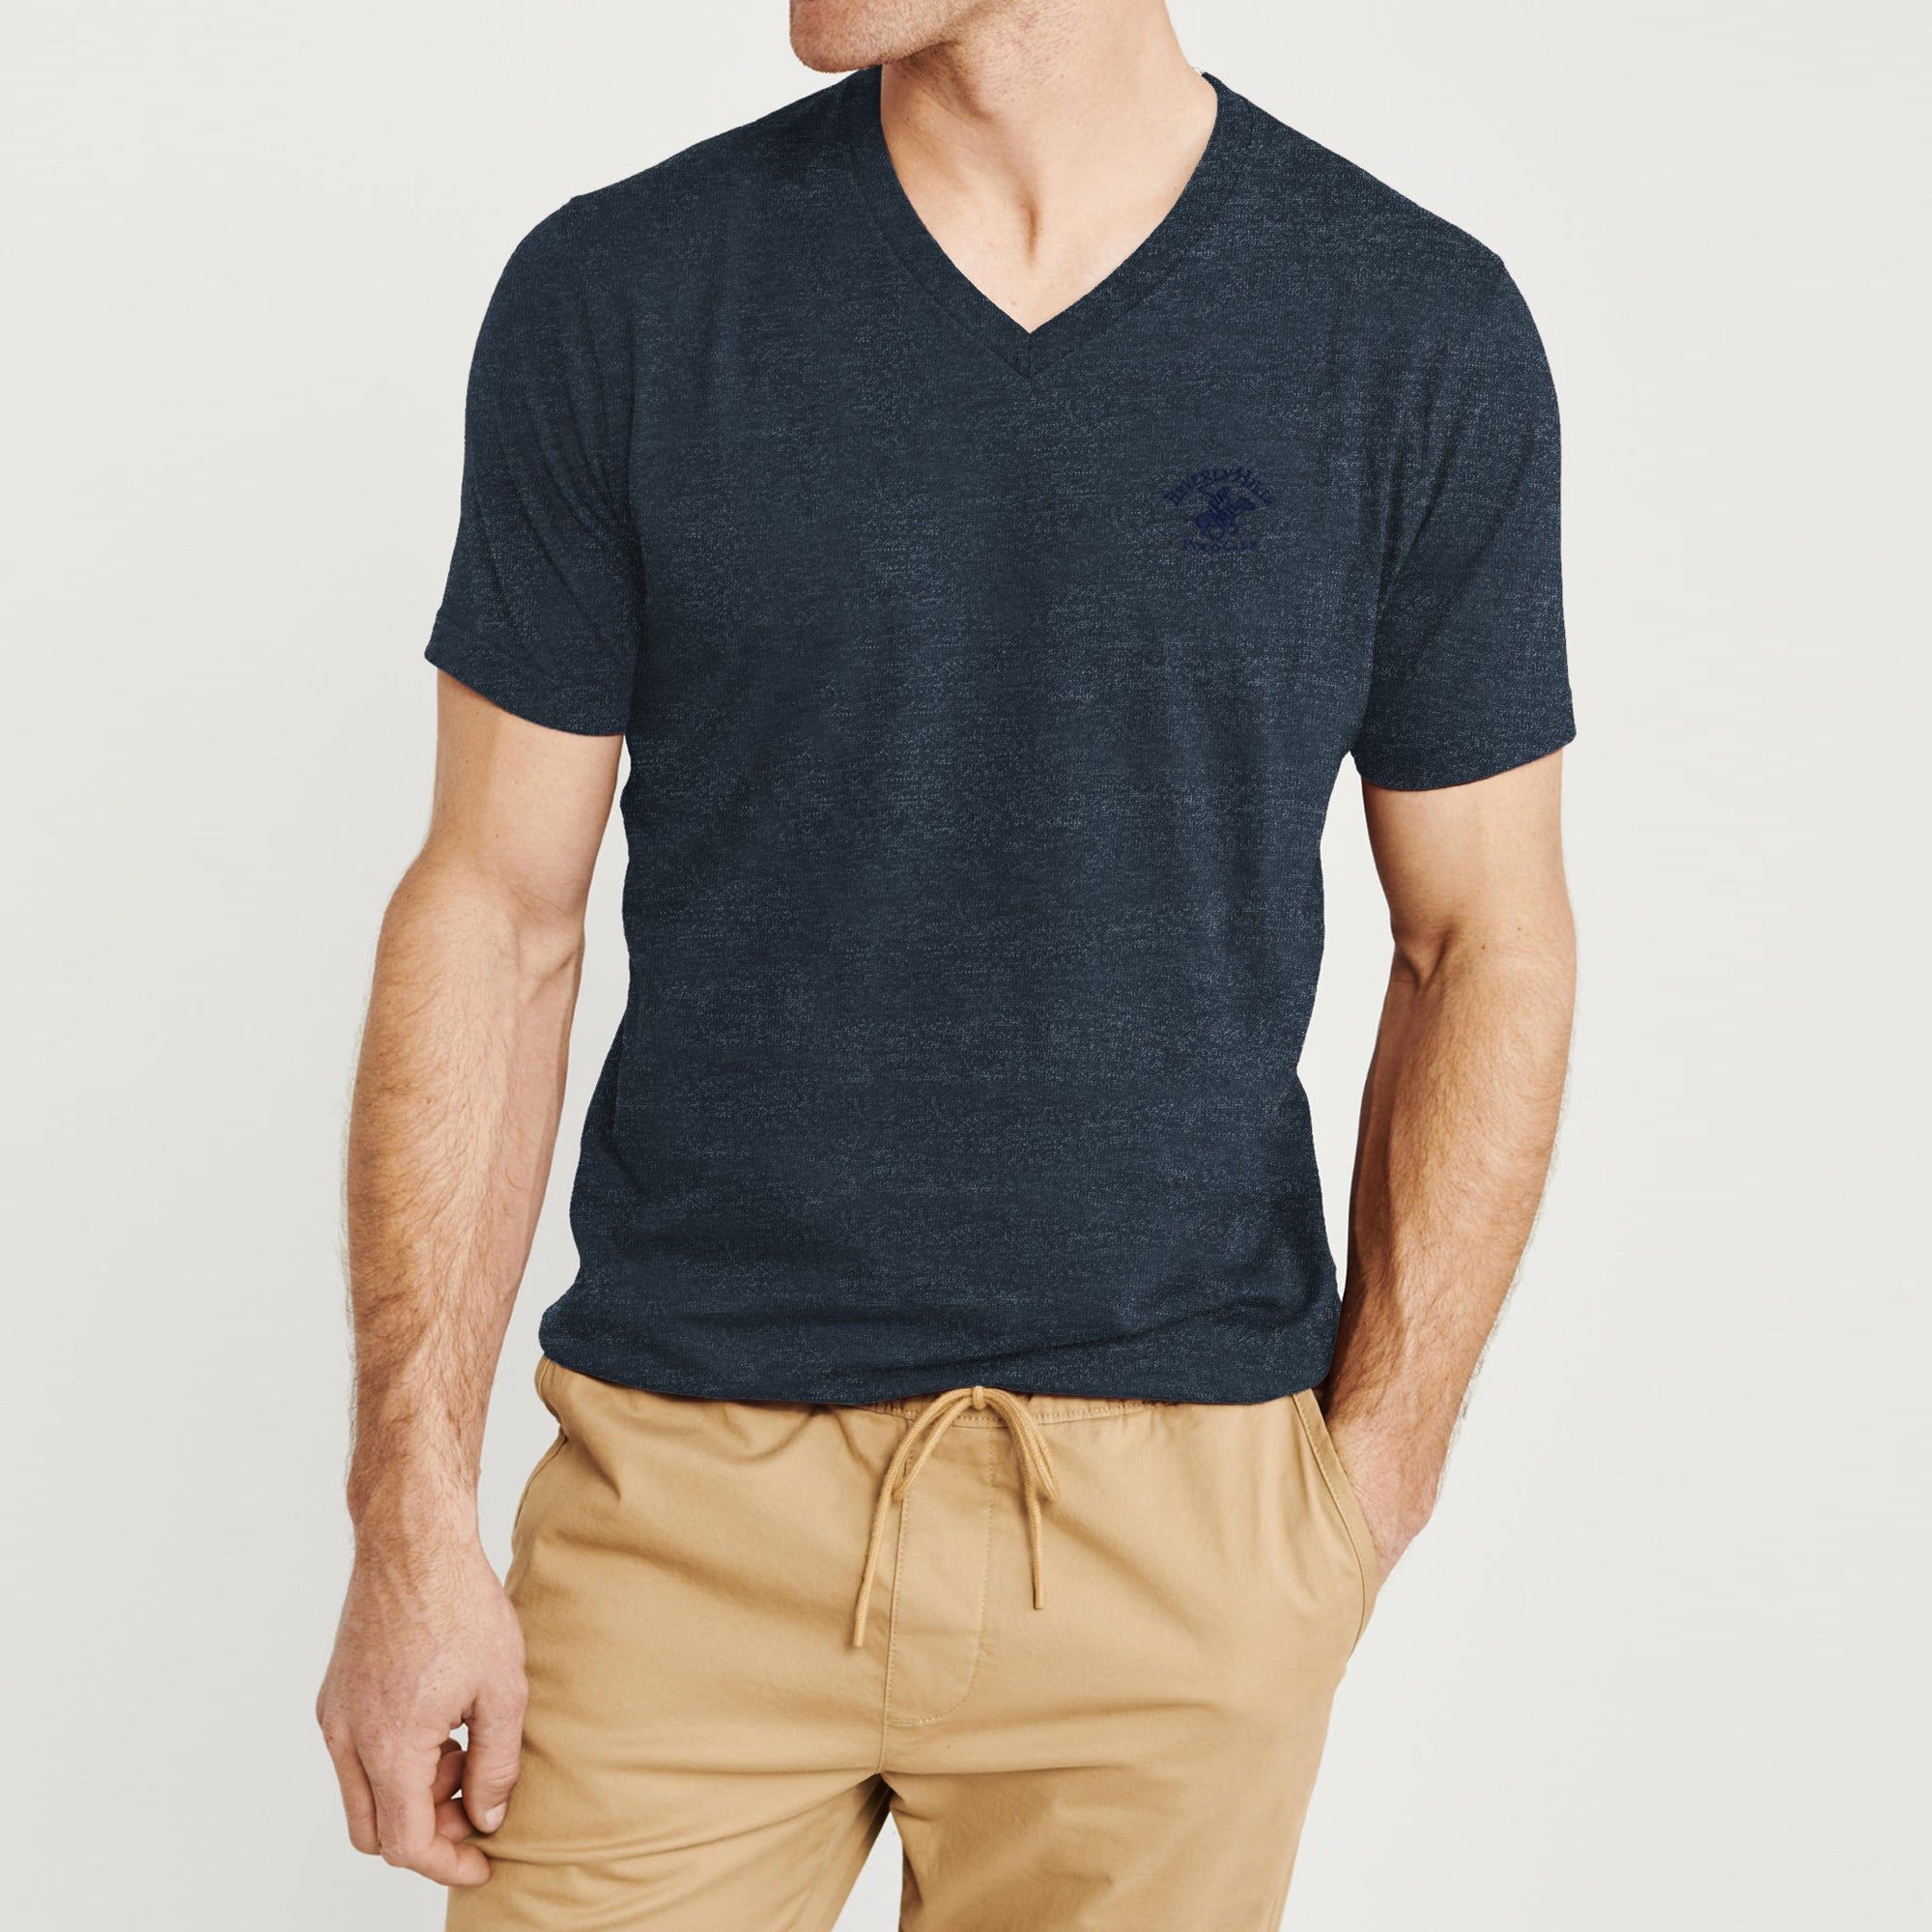 brandsego - Beverly Hills V Neck Half Sleeve Tee Shirt For Men-Dark Navy Melange-BE8869